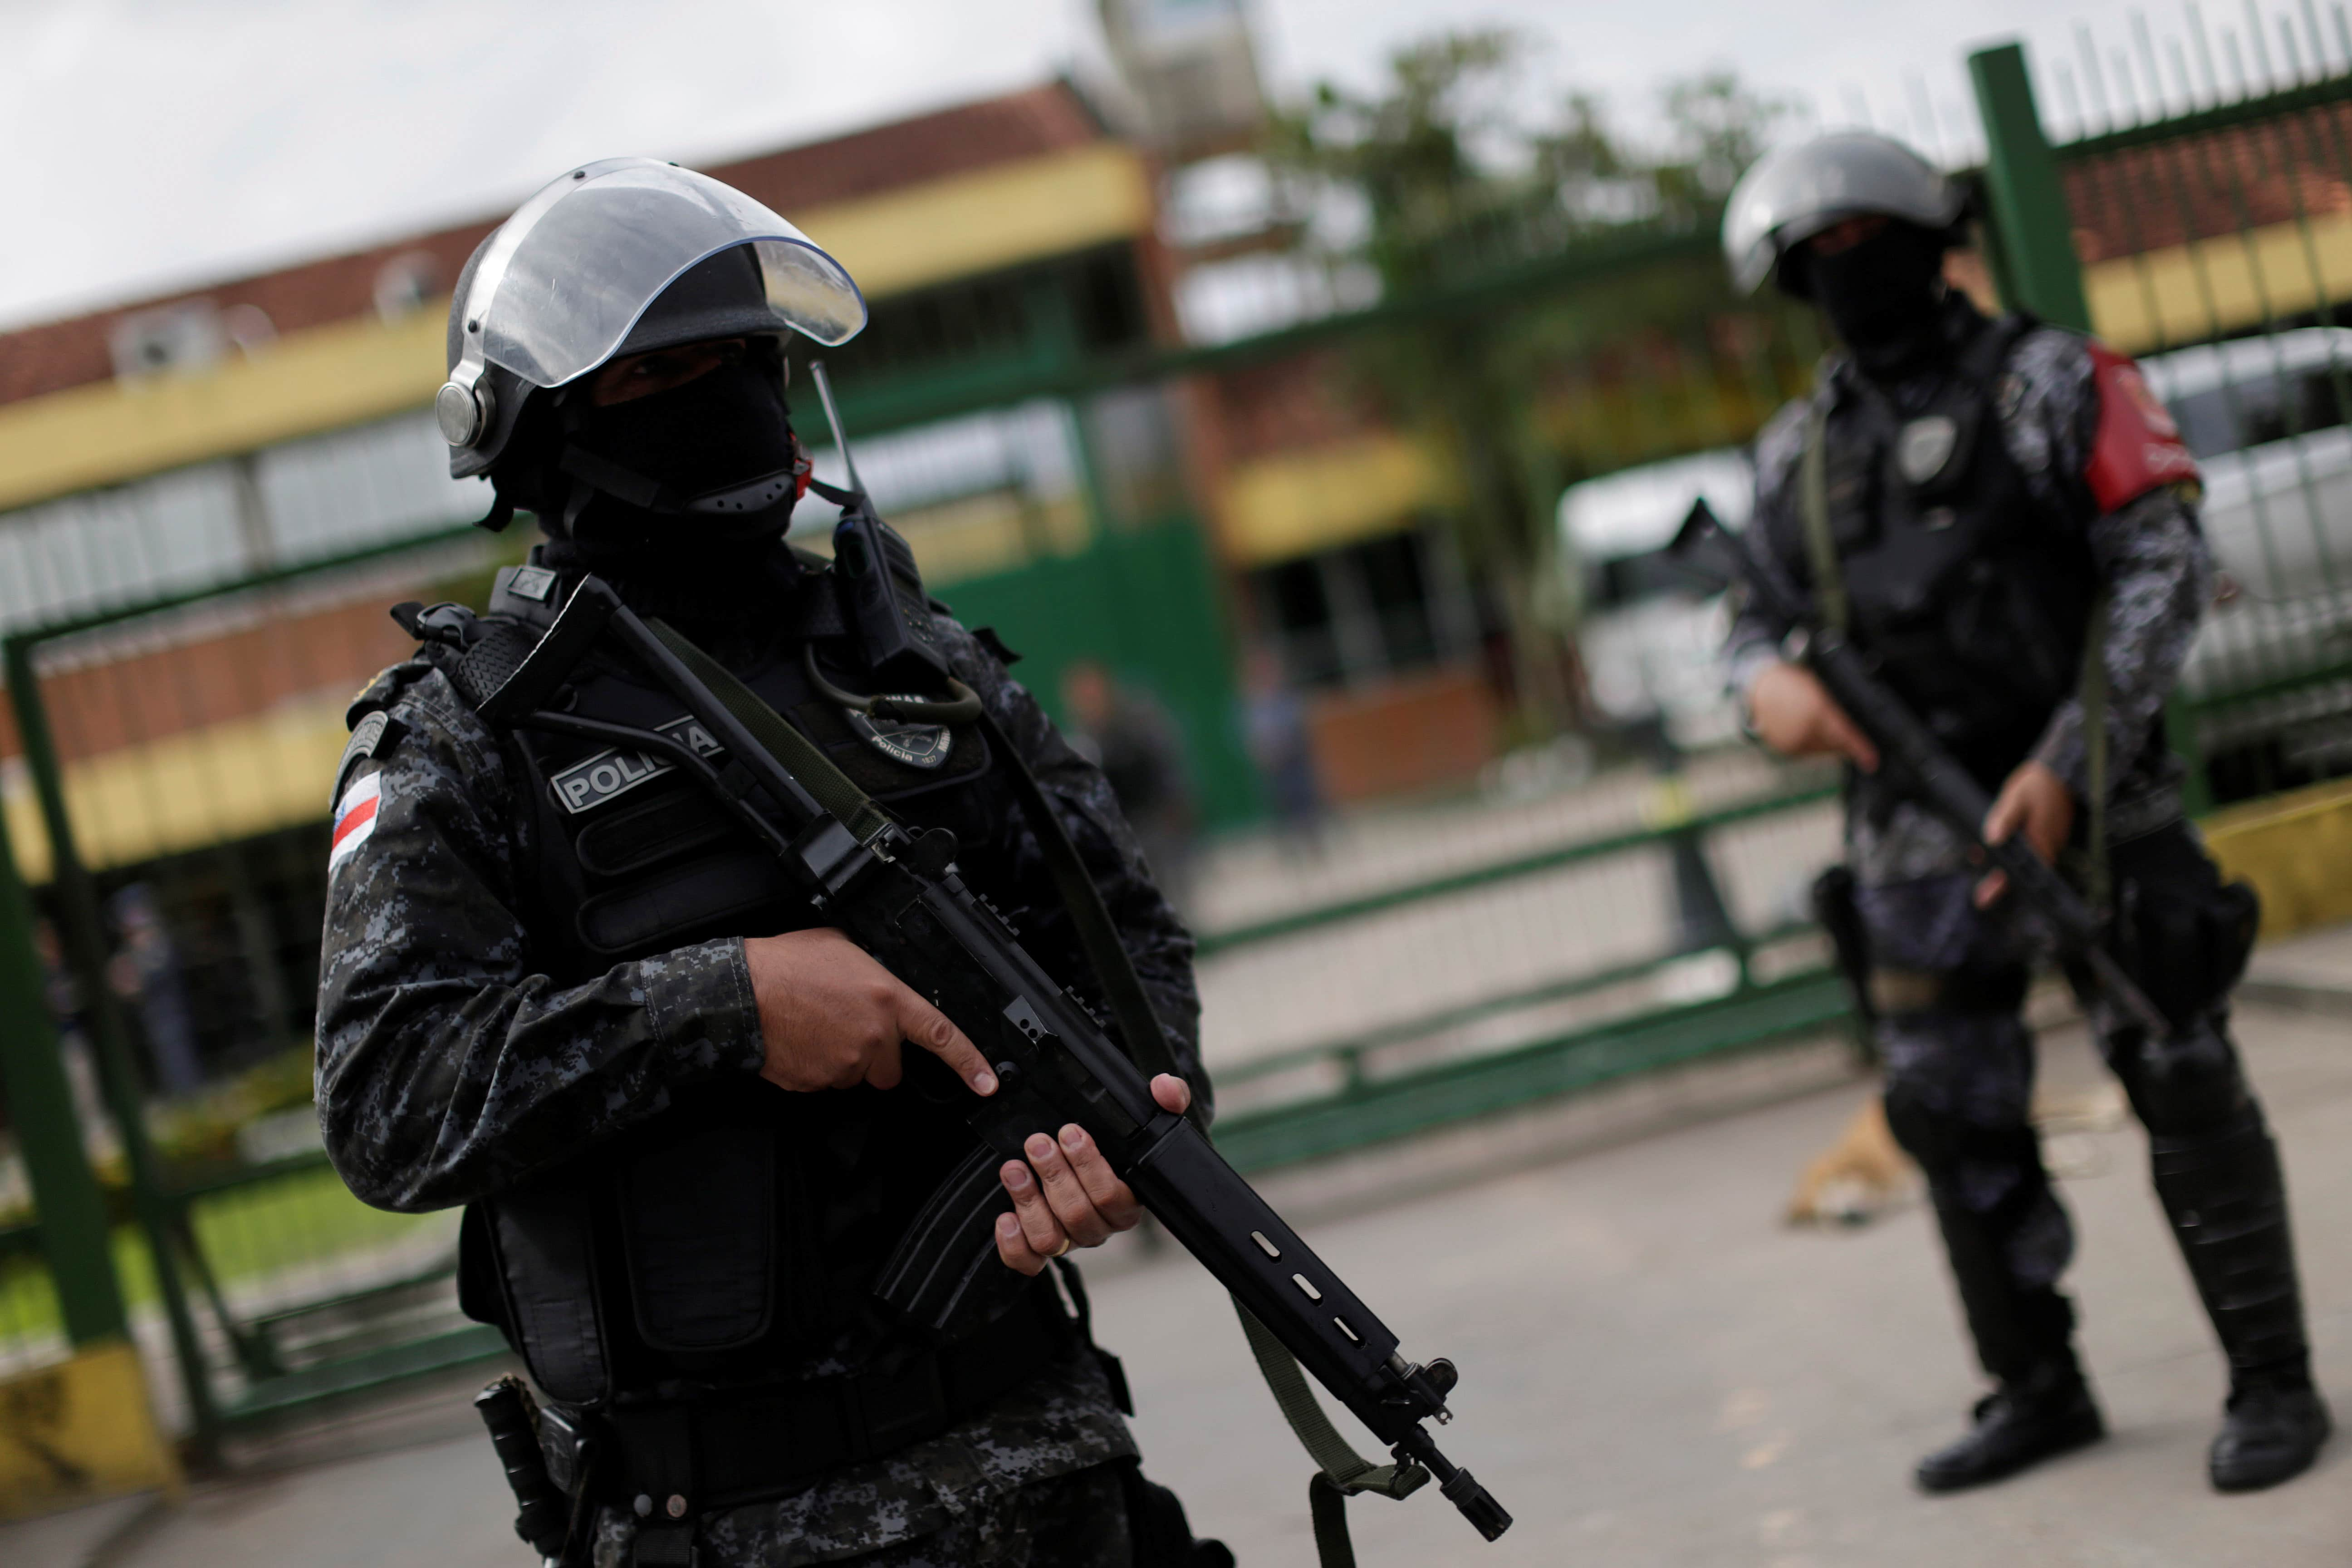 Military police are seen during a security operation outside of Puraquequara prison in Manaus, 5 January 2017, REUTERS/Ueslei Marcelino